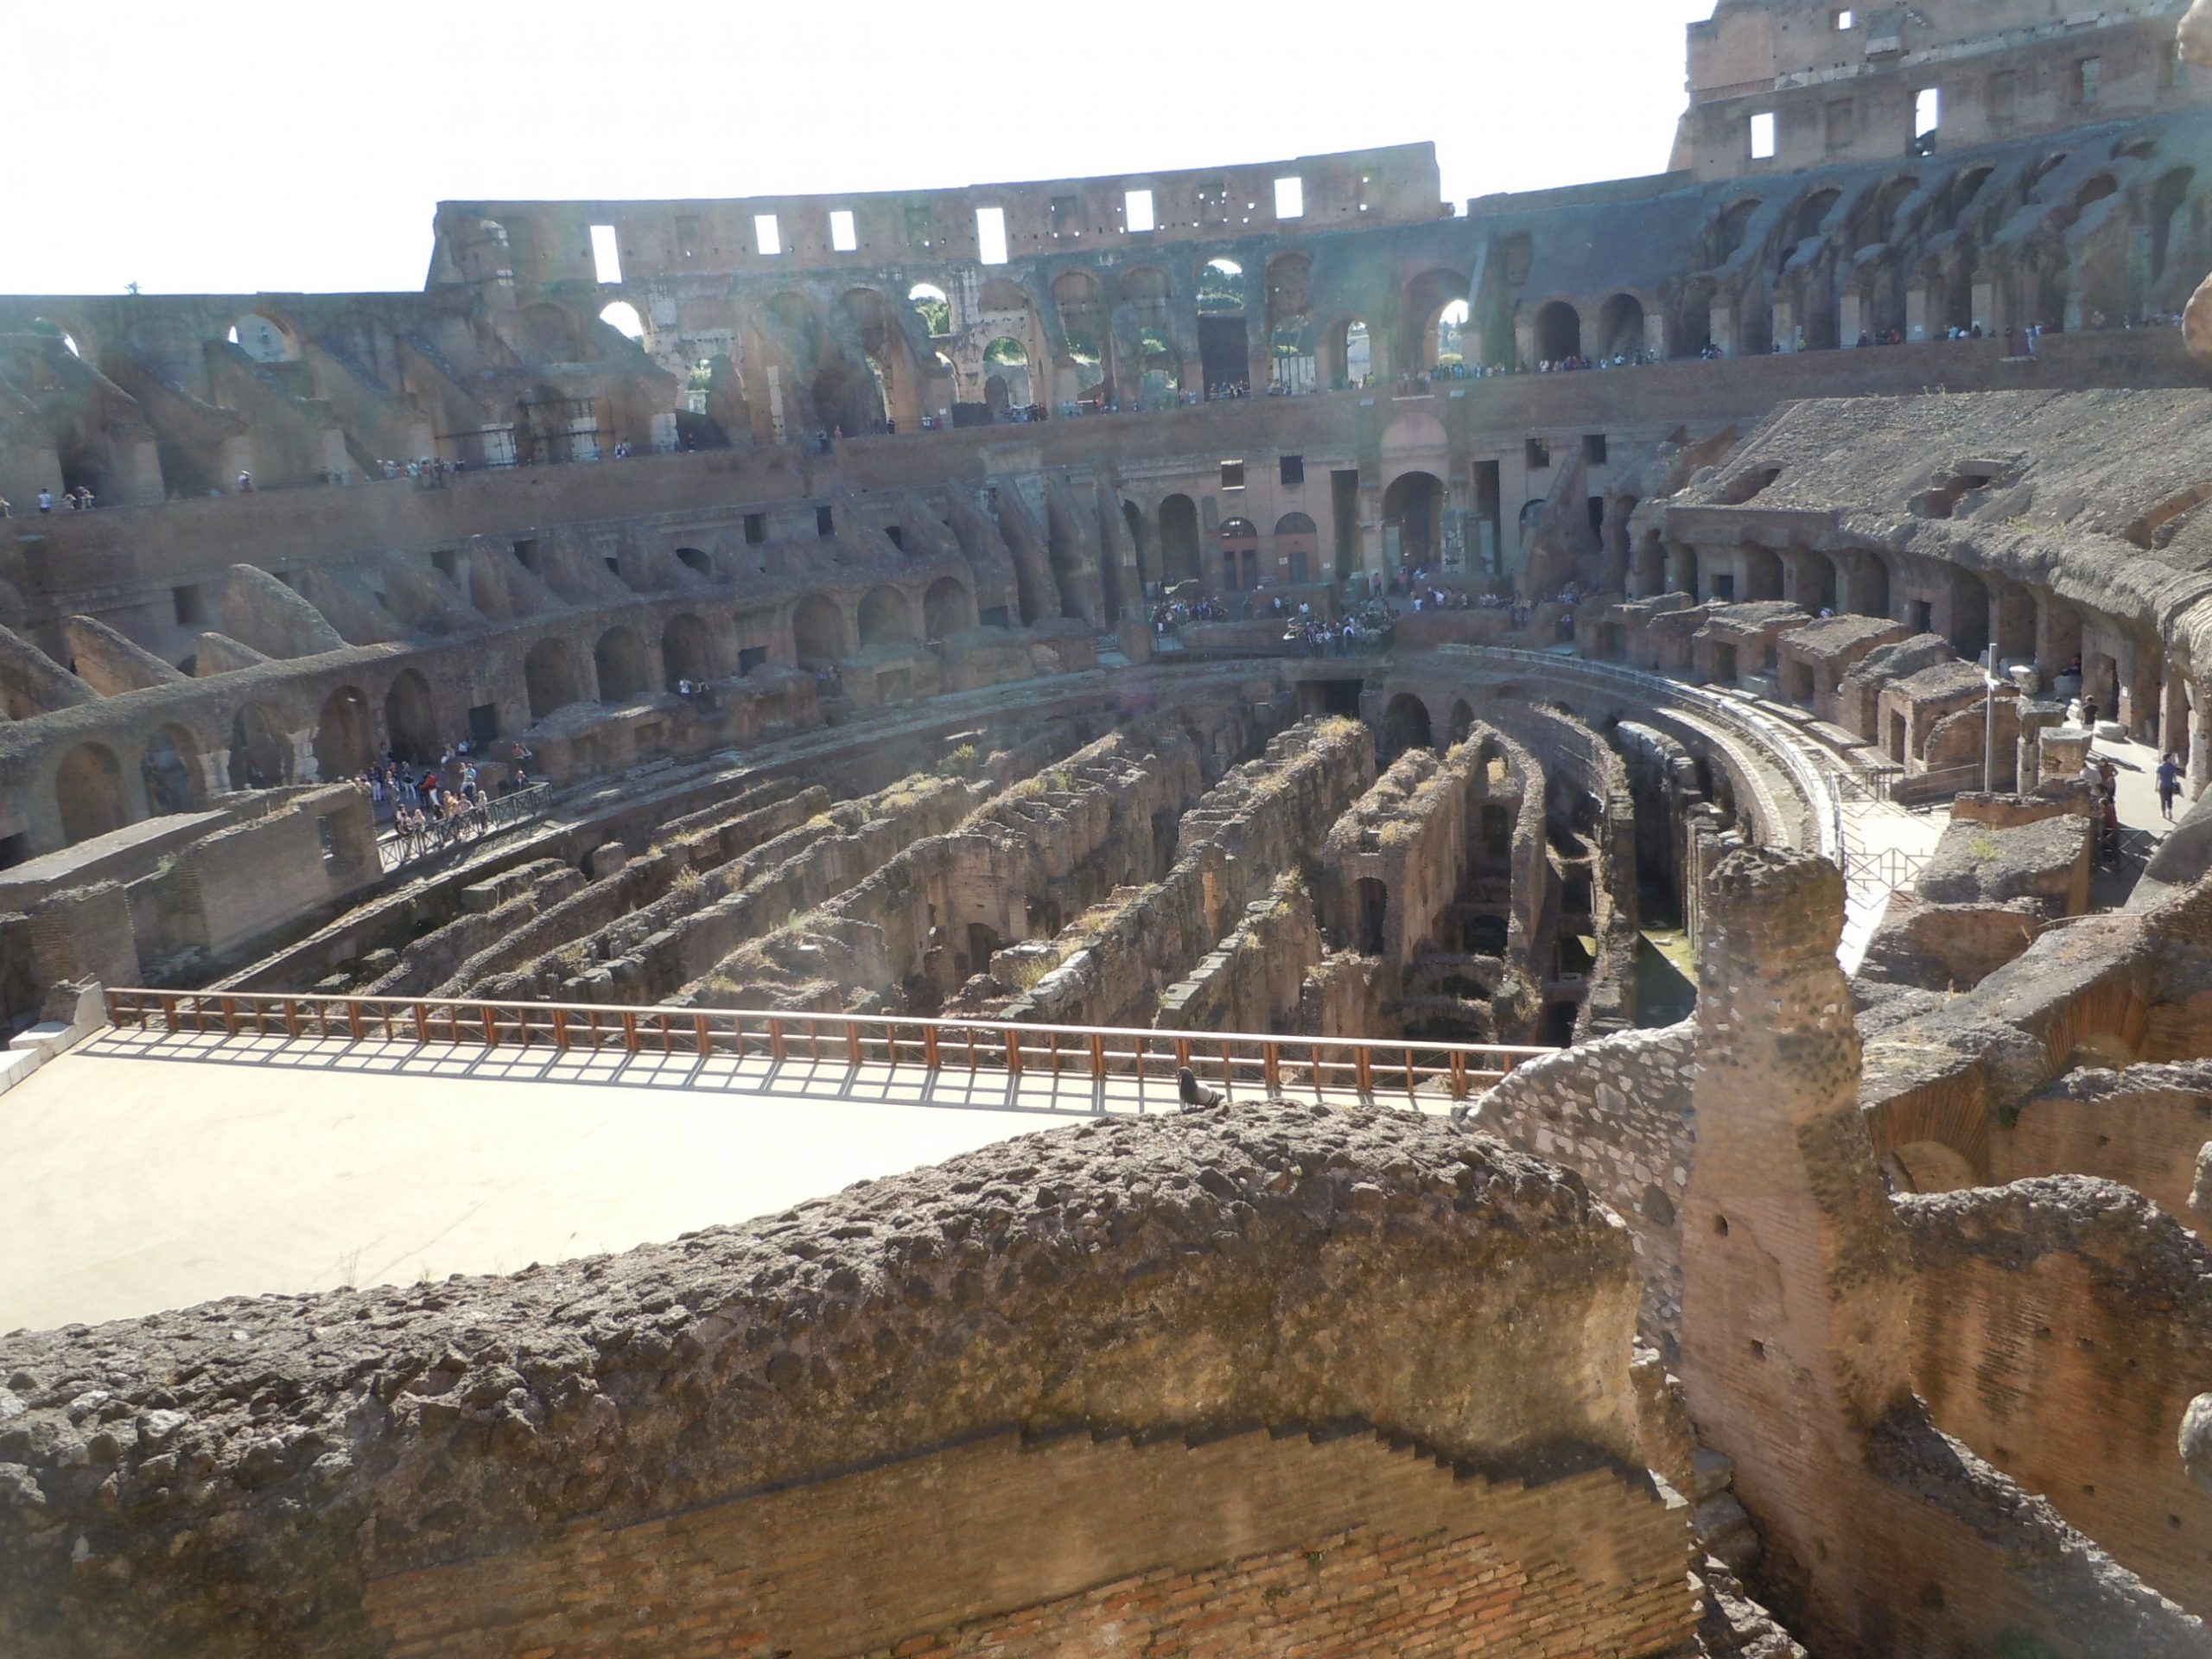 the Colosseum could hold between 50,000 and 80,000 spectators